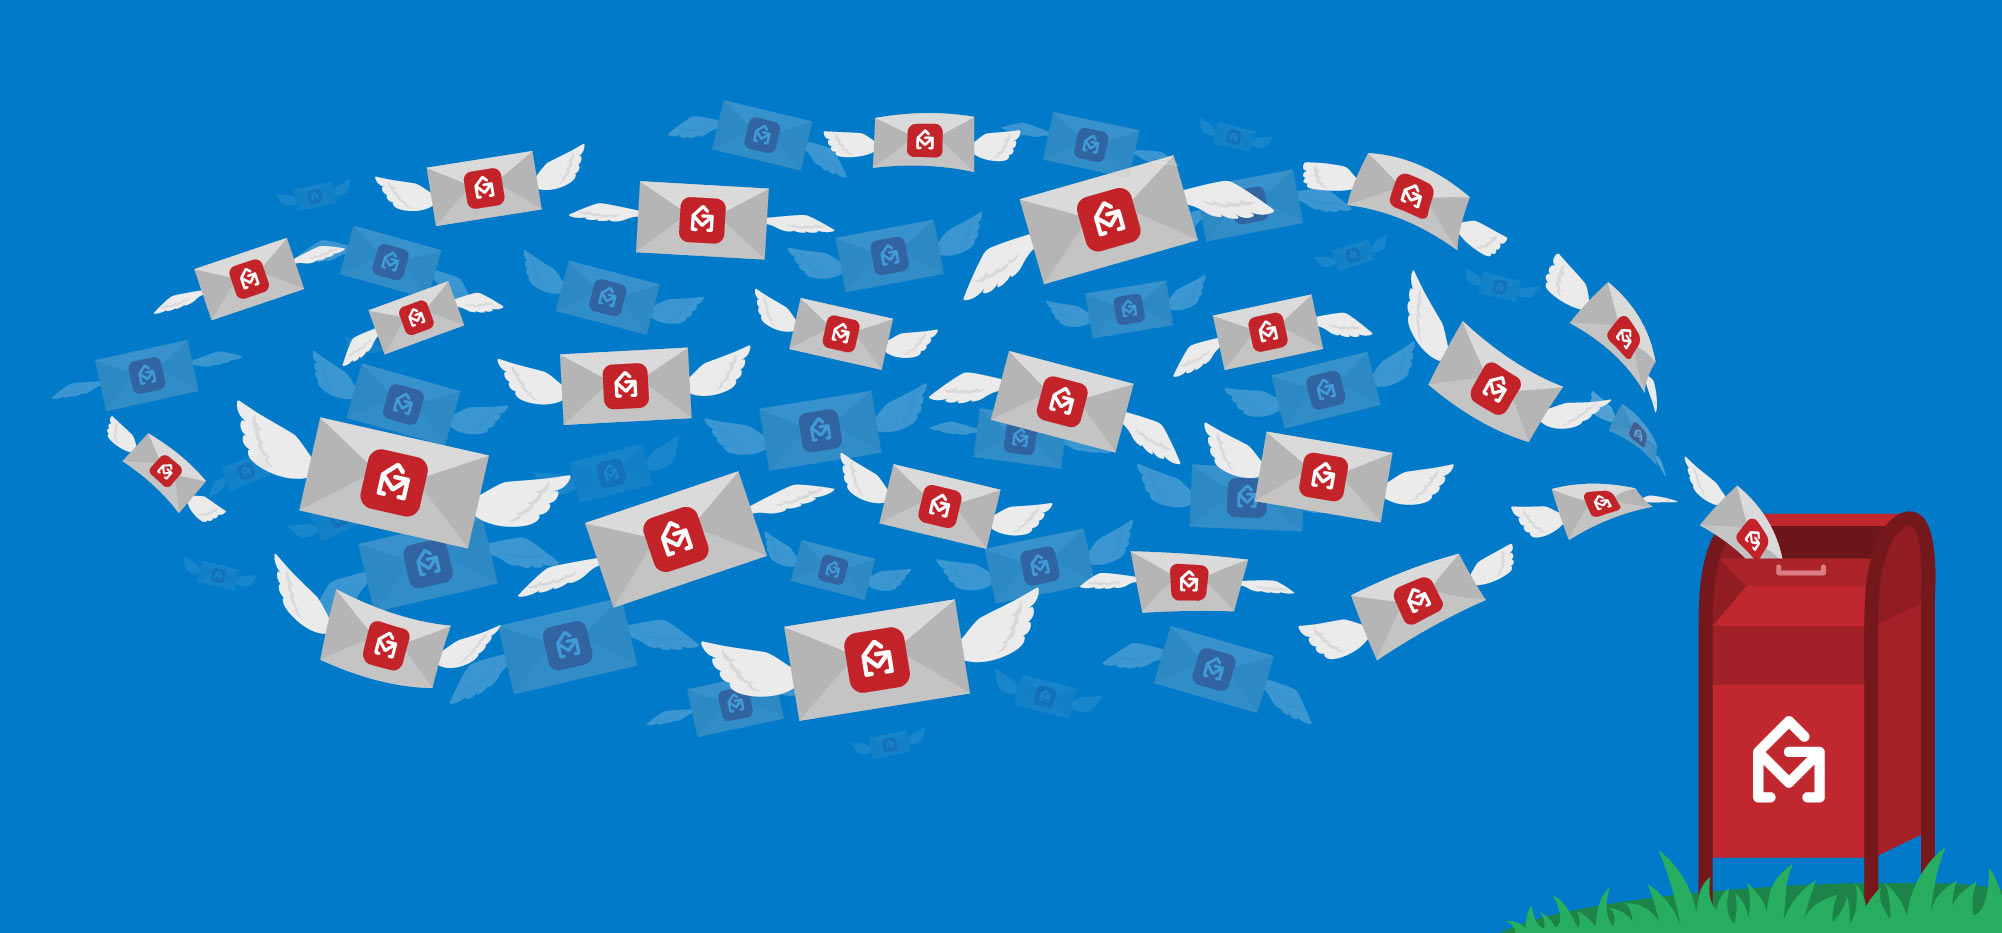 Illustration: Swarm of GMass-branded envelopes in the sky flying into a red mailbox with the GMass logo on it